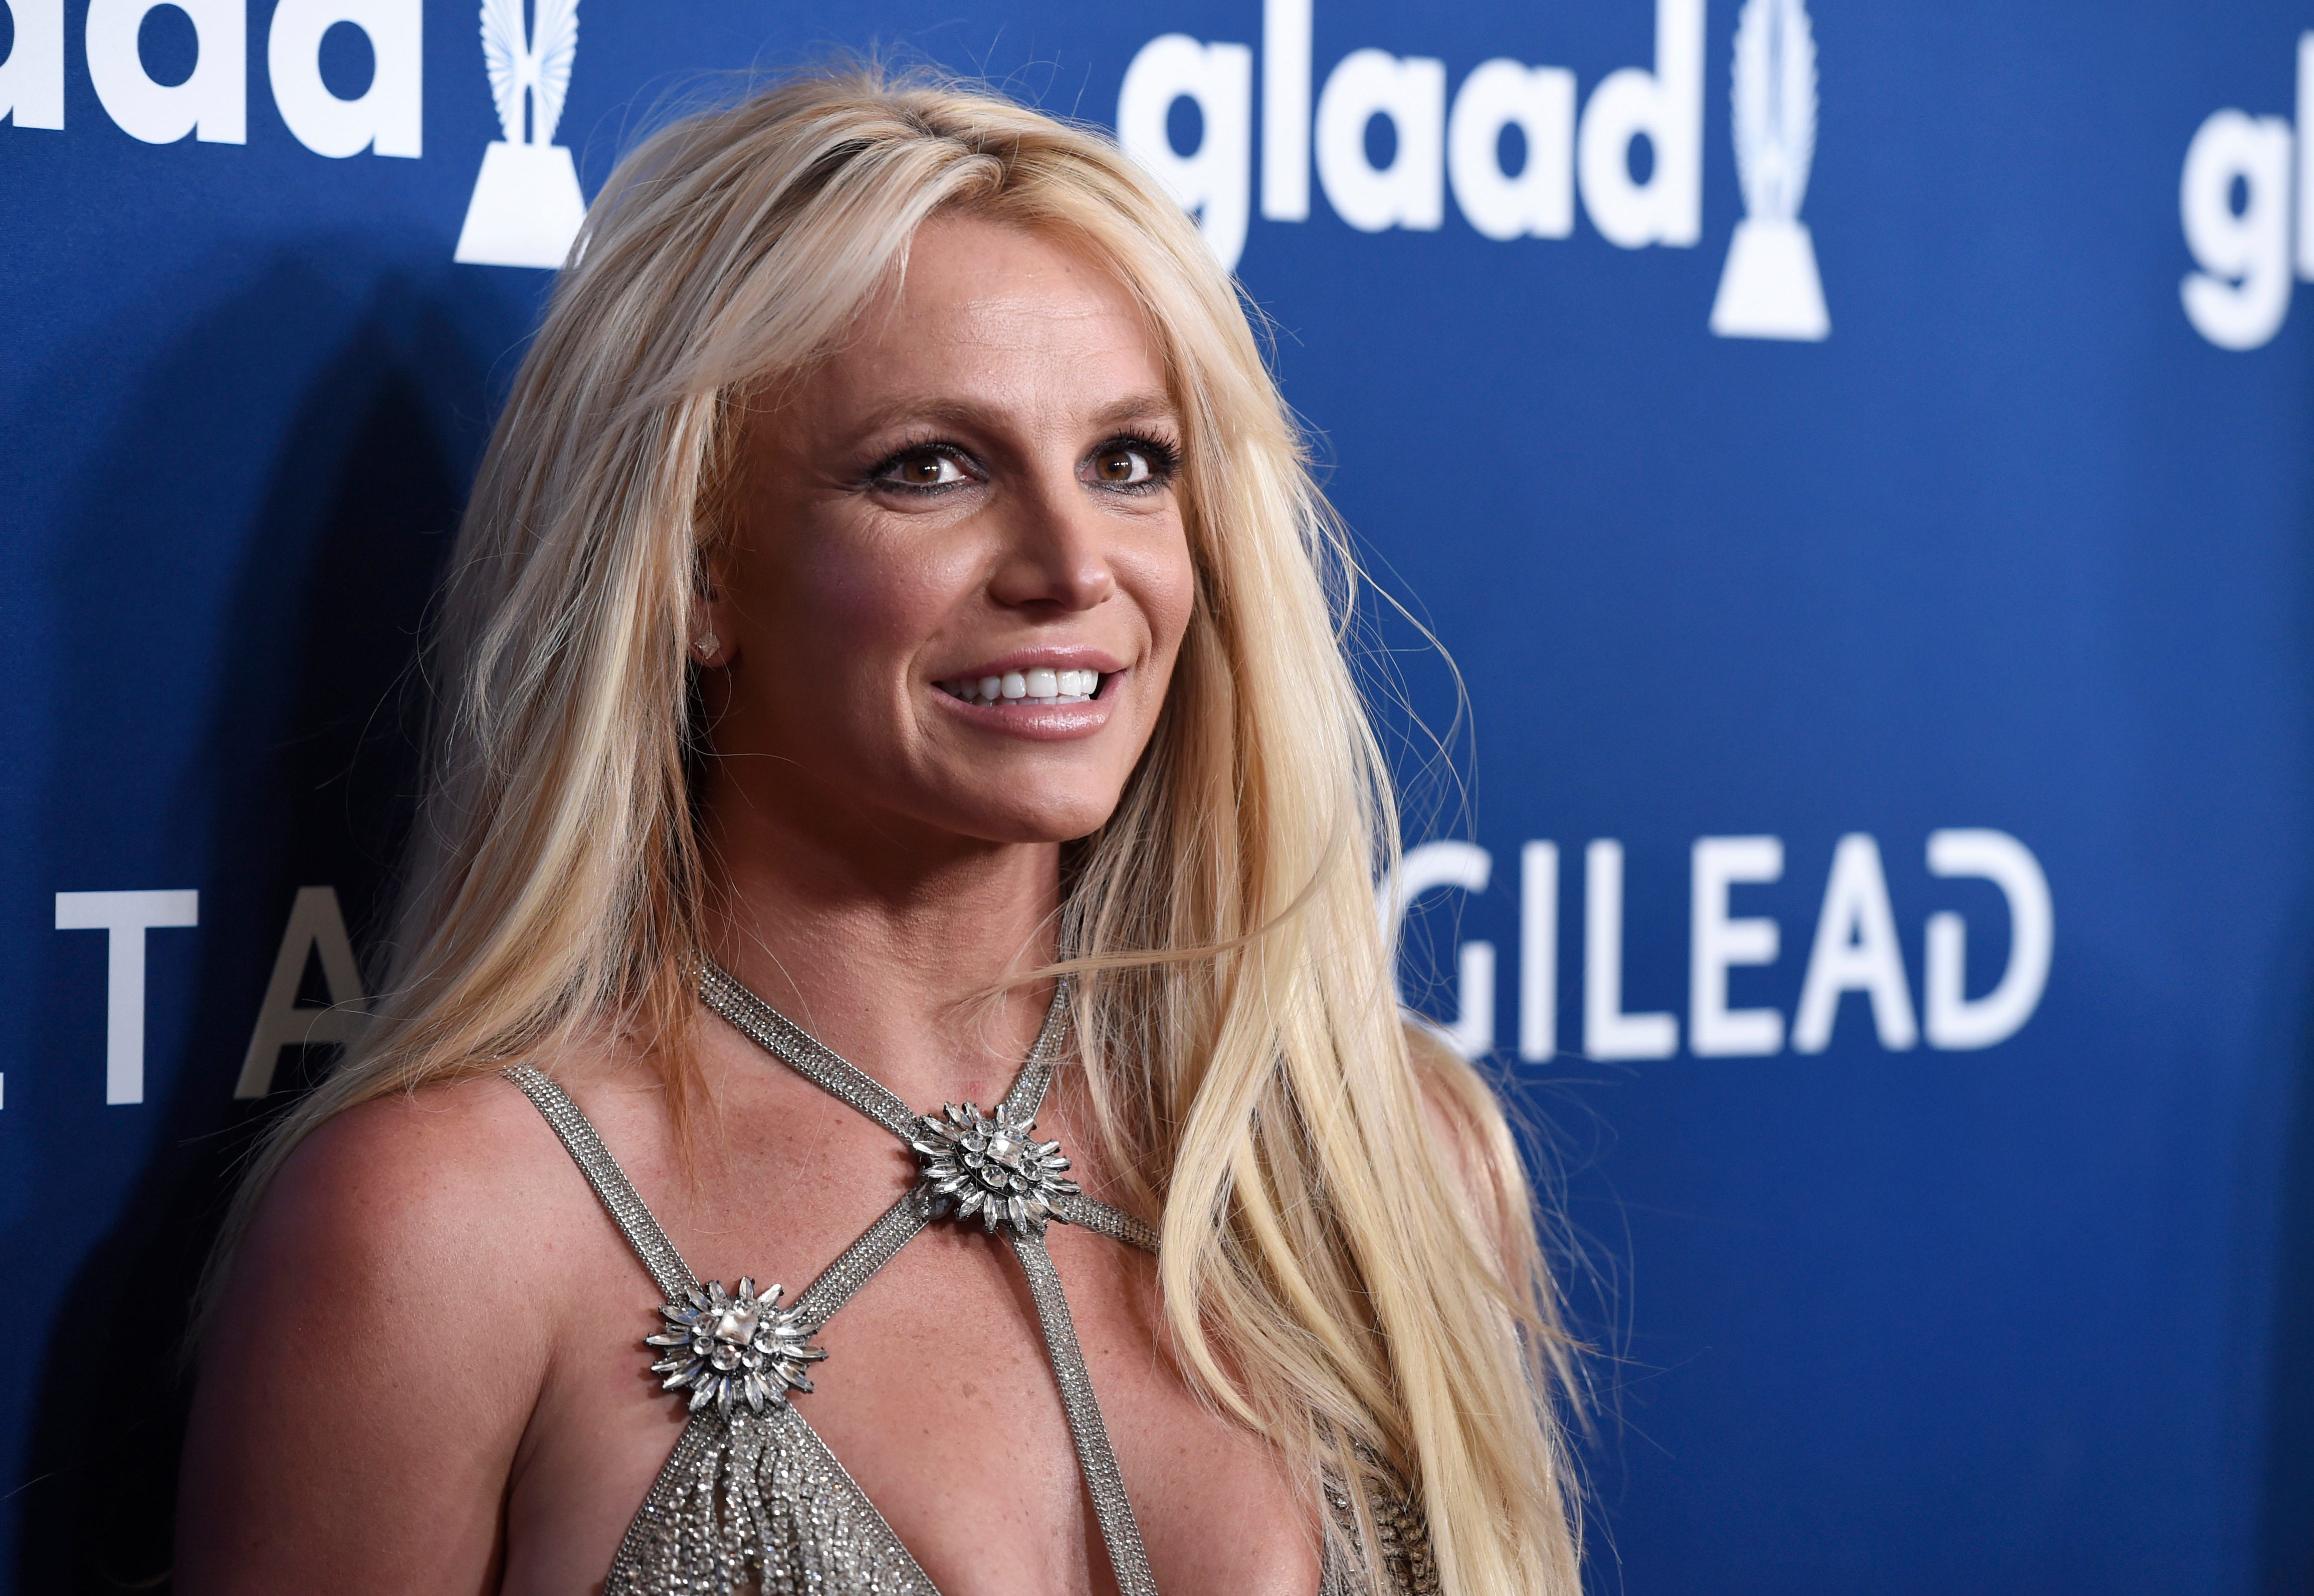 foto 7 Things Britney Spears Did to Get the Body She Has Now